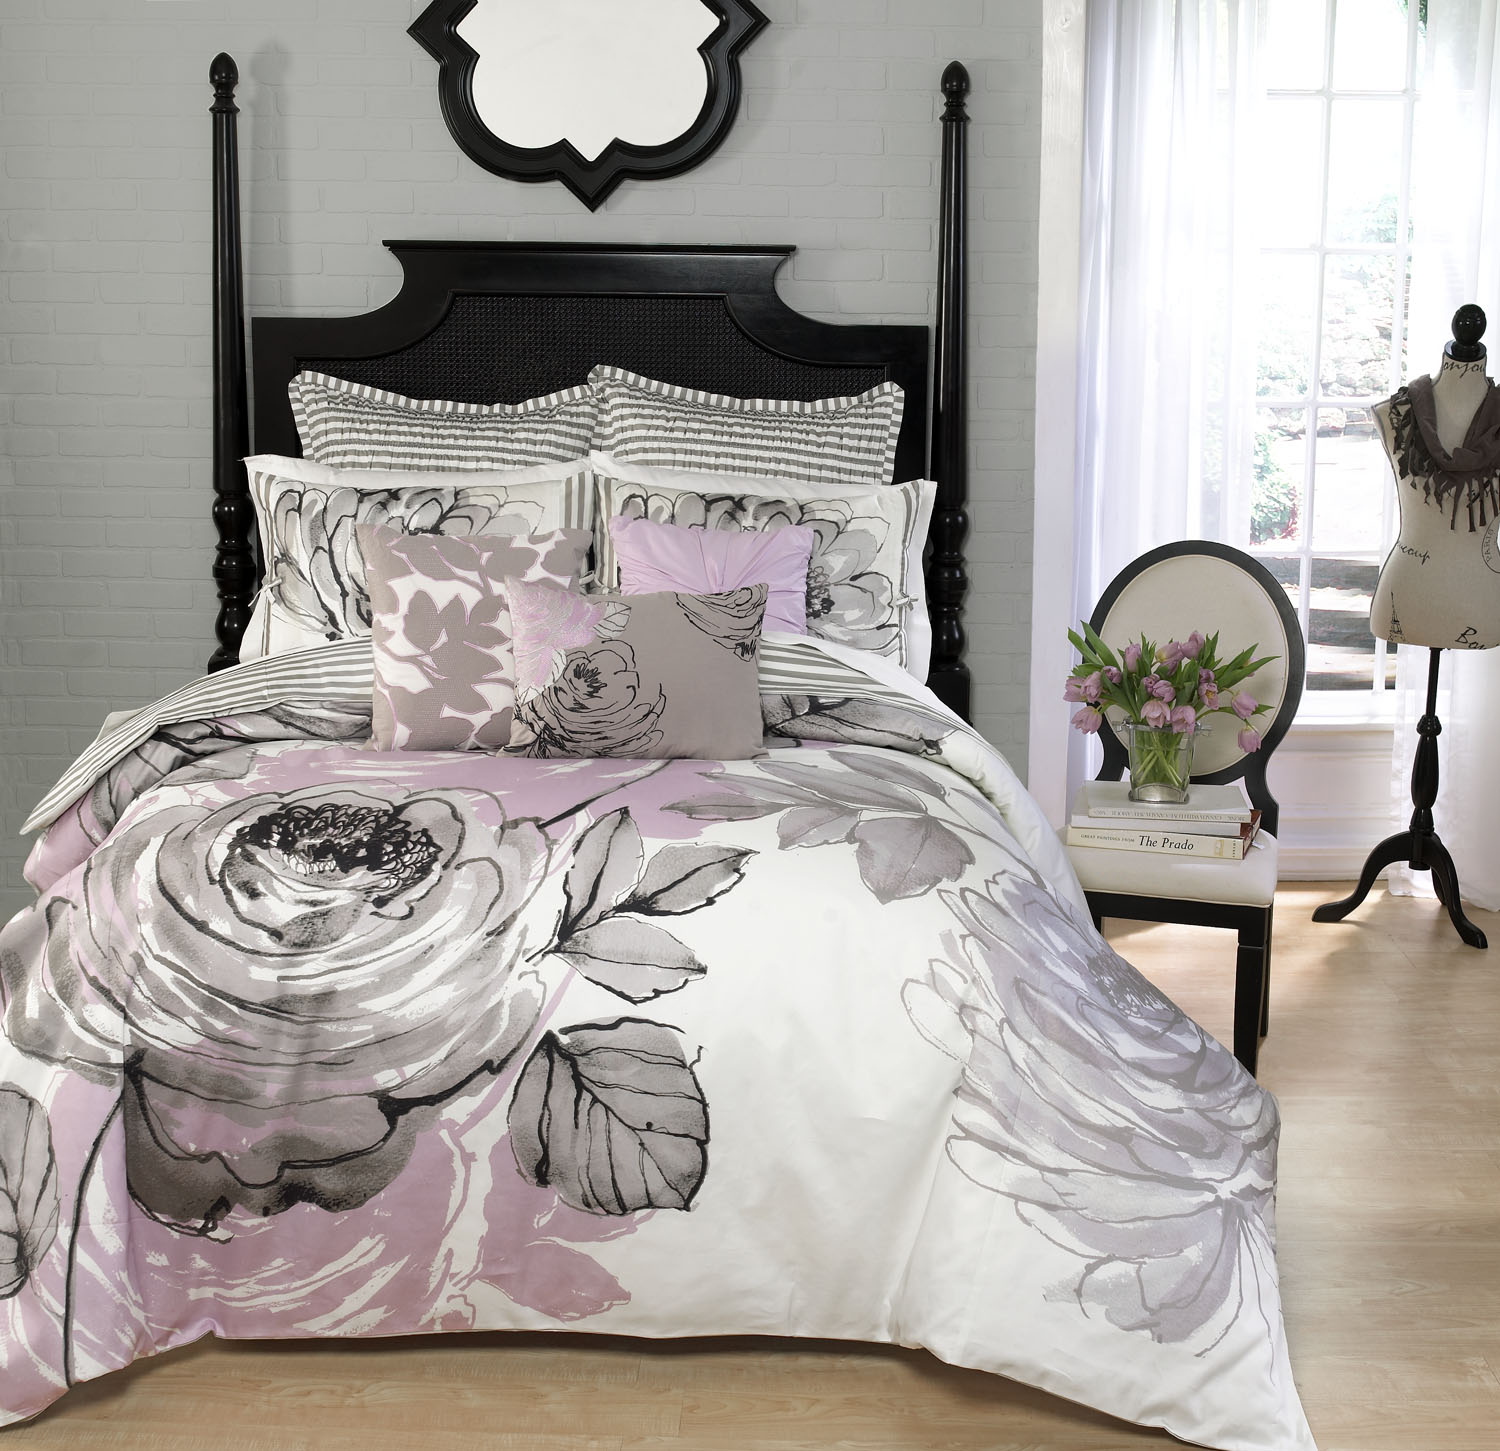 Ellery Homestyles Introduces New Products And Brand Growth